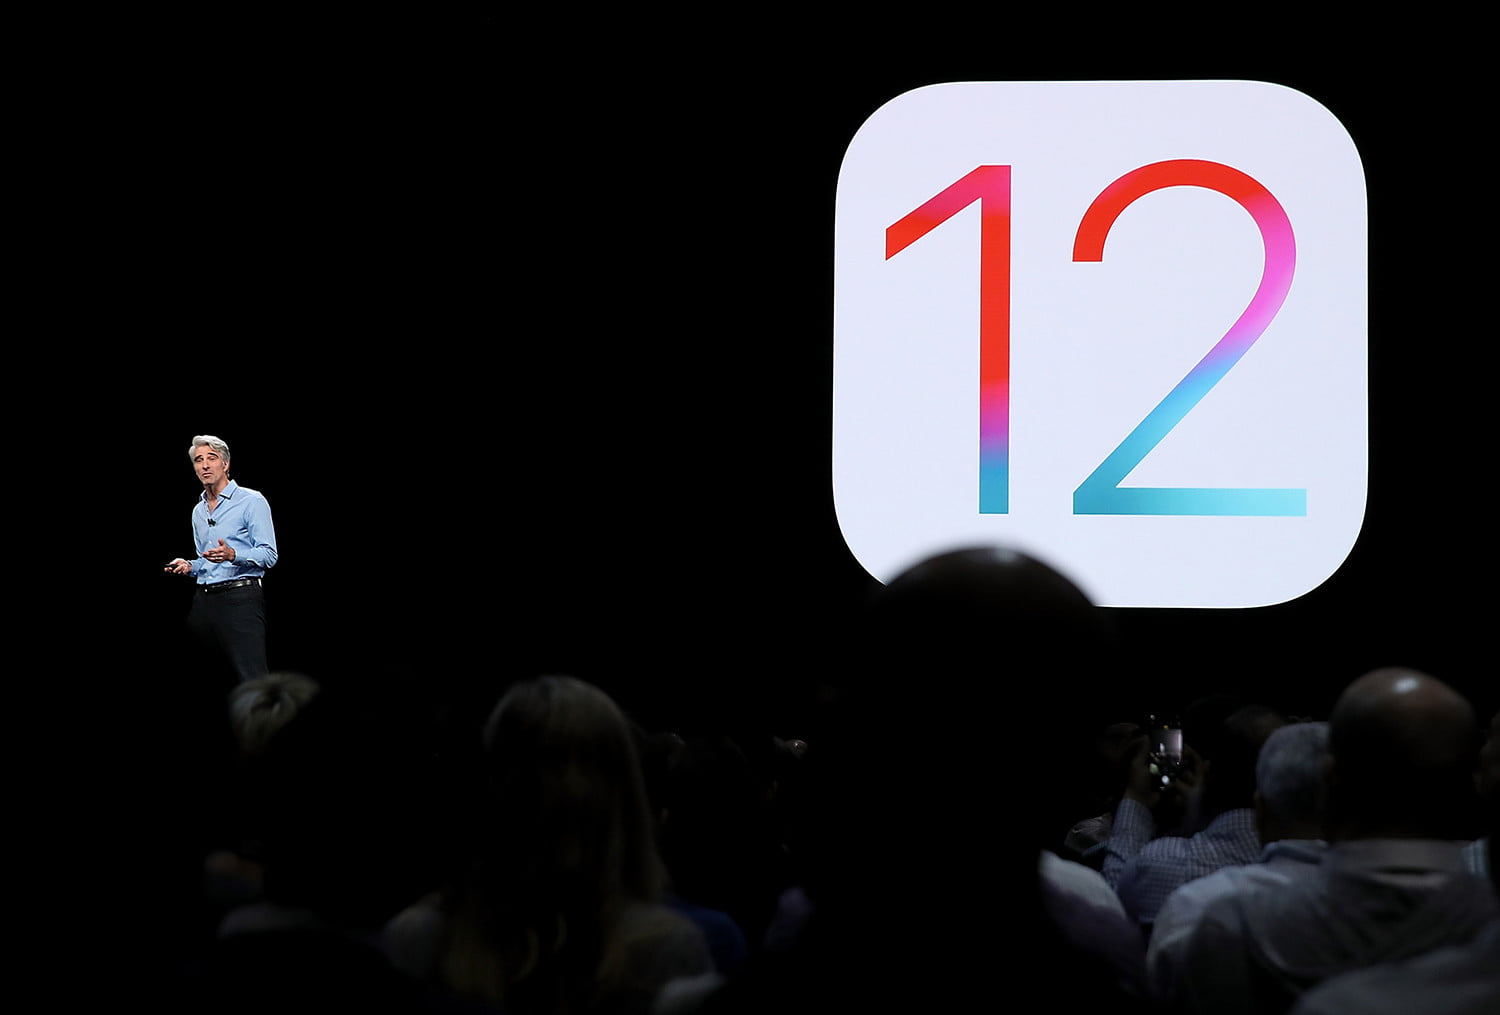 iOS 12 Proves If You Care About Software Updates, Buy an